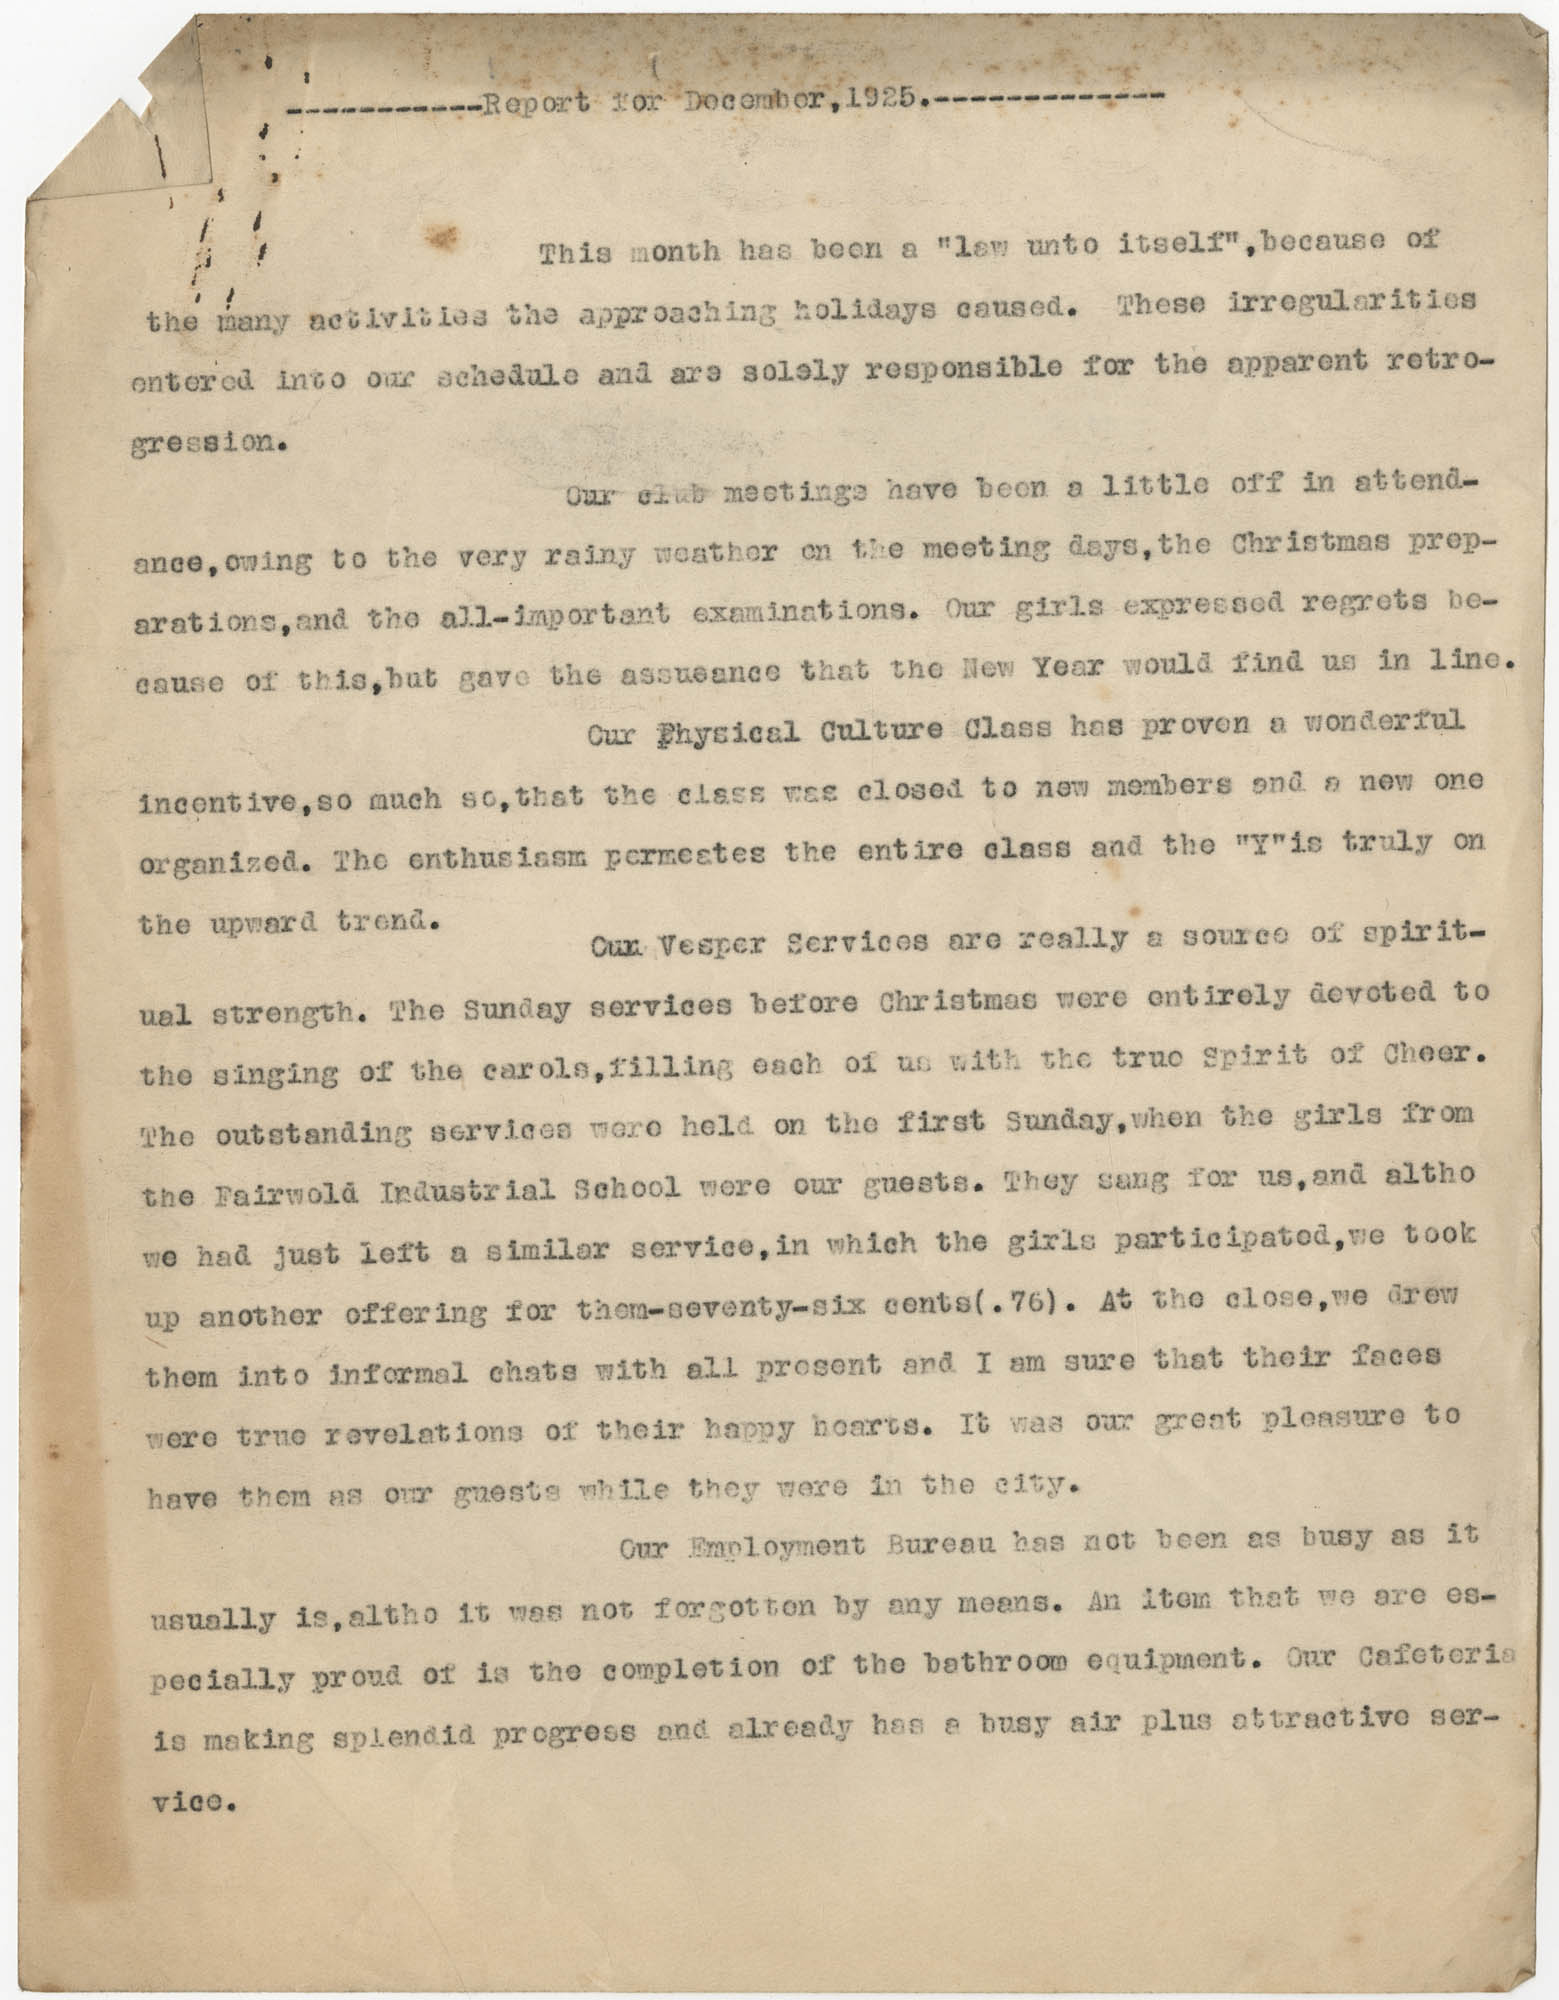 Monthly Report for the Coming Street Y.W.C.A., December 1925